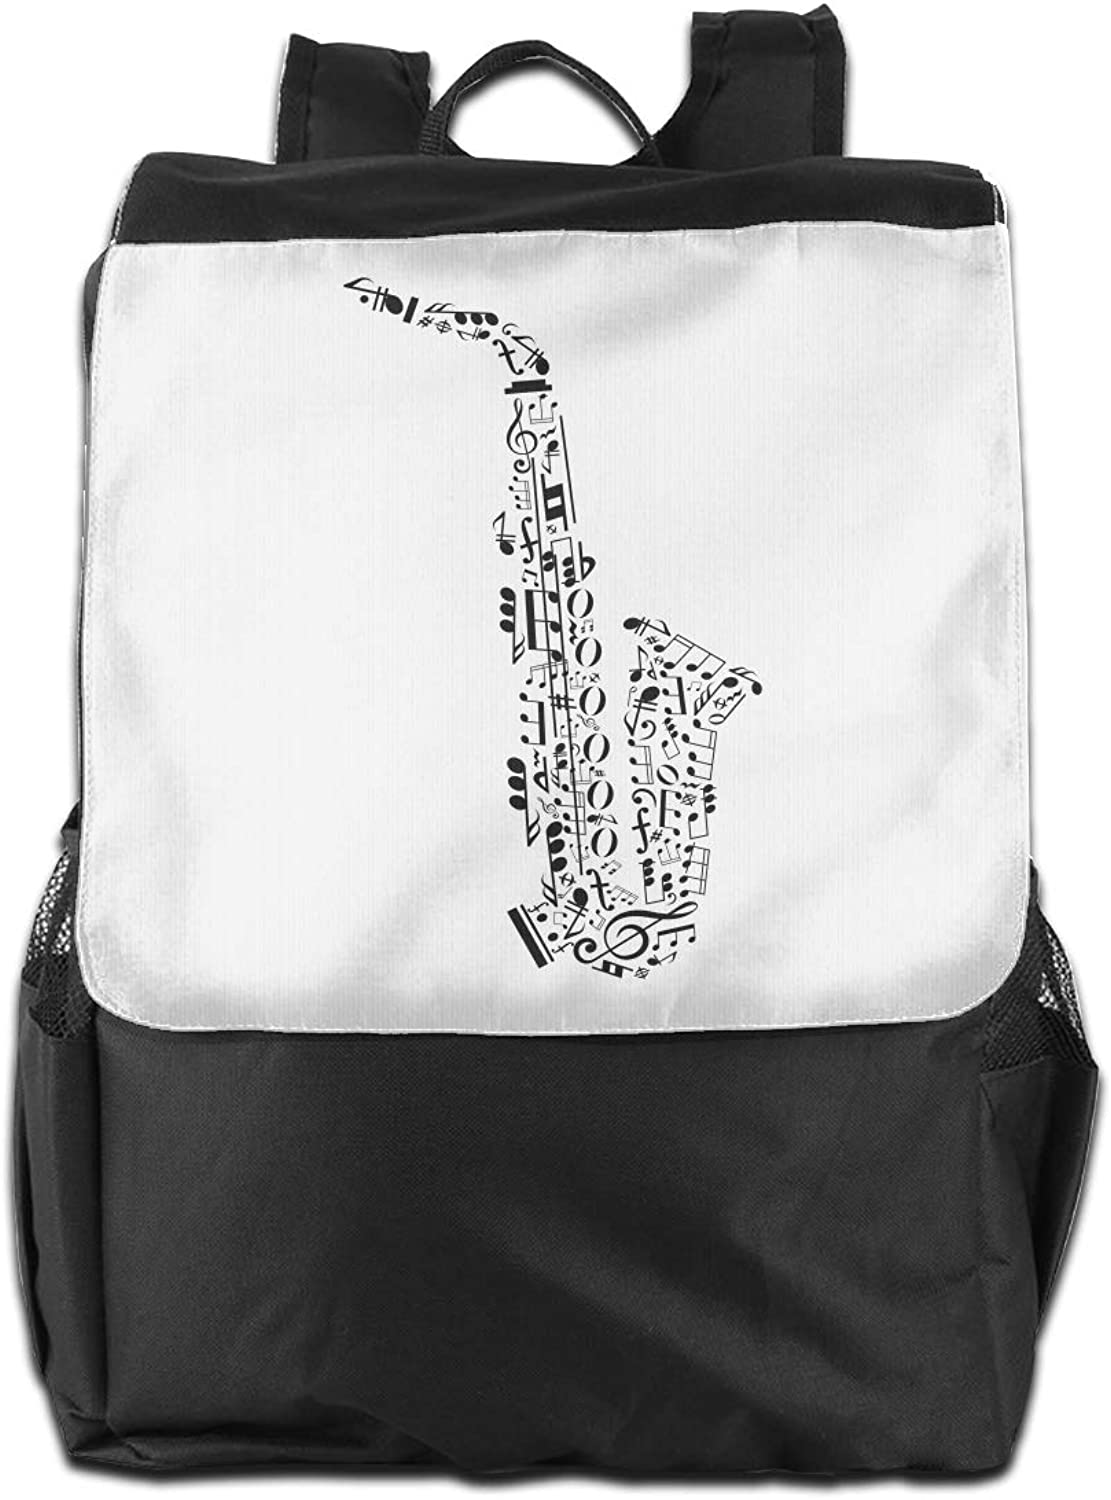 Sax Music Notes Printed Boys Backpack Lightweight Casual Shoulder Bag School Bookbags